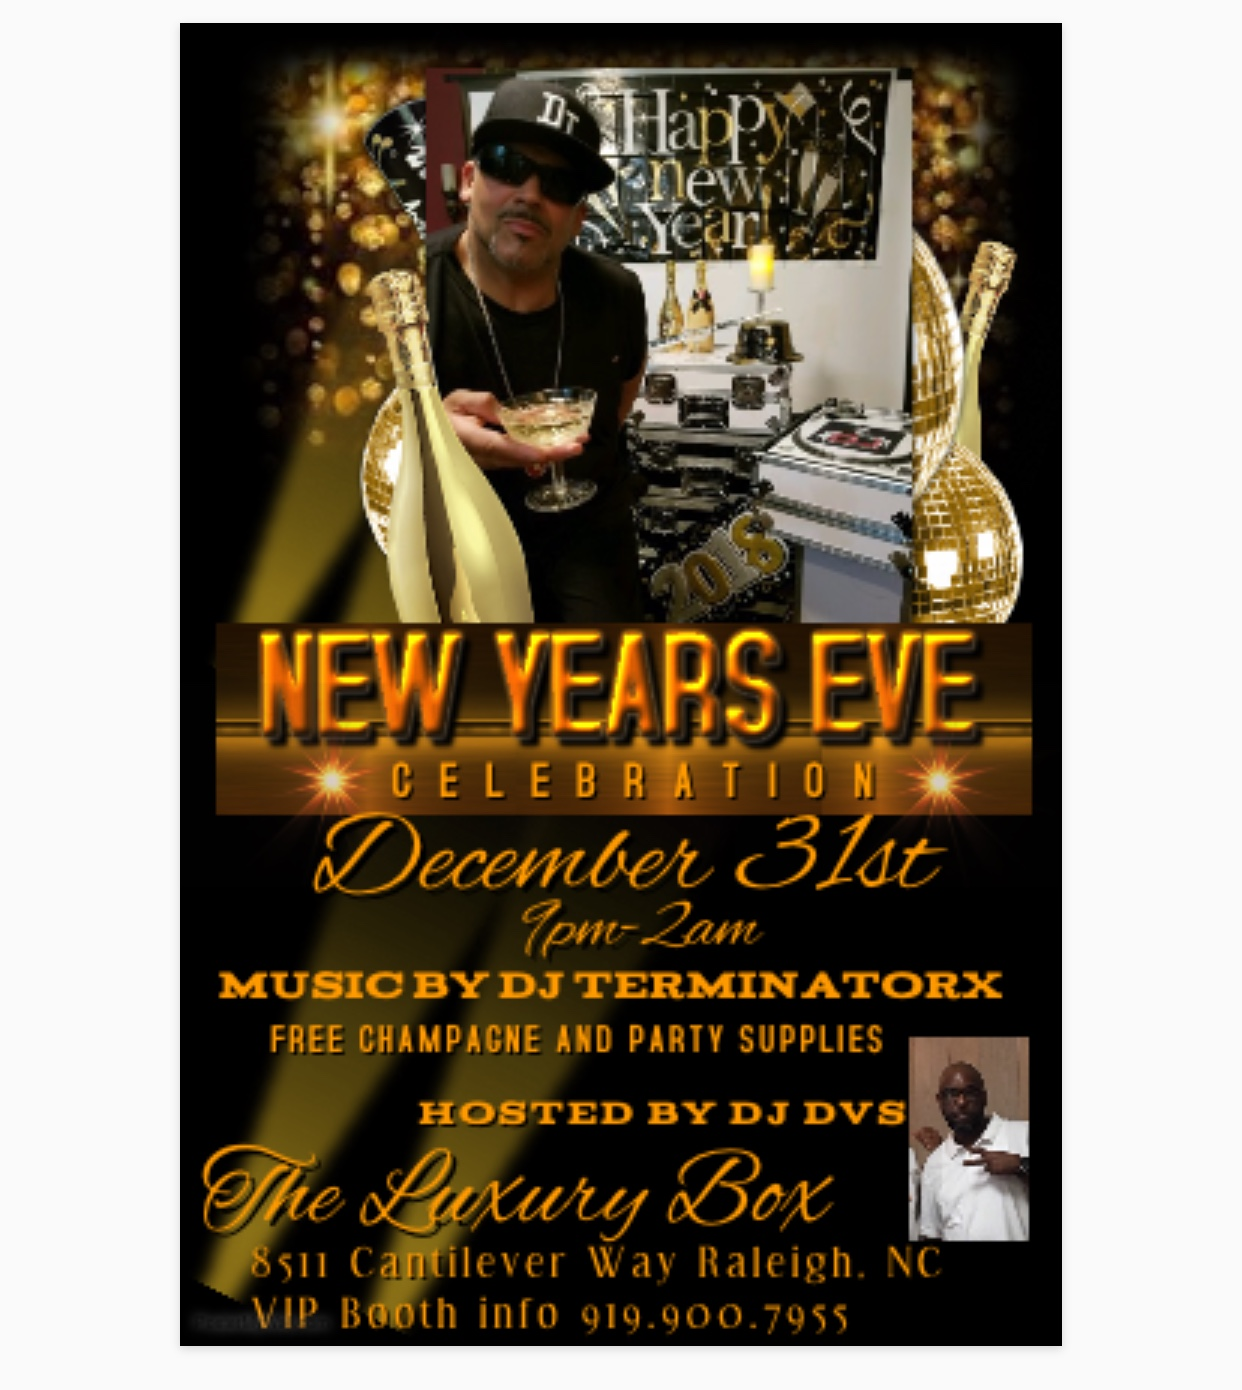 NYE 2018 flyer luxury box